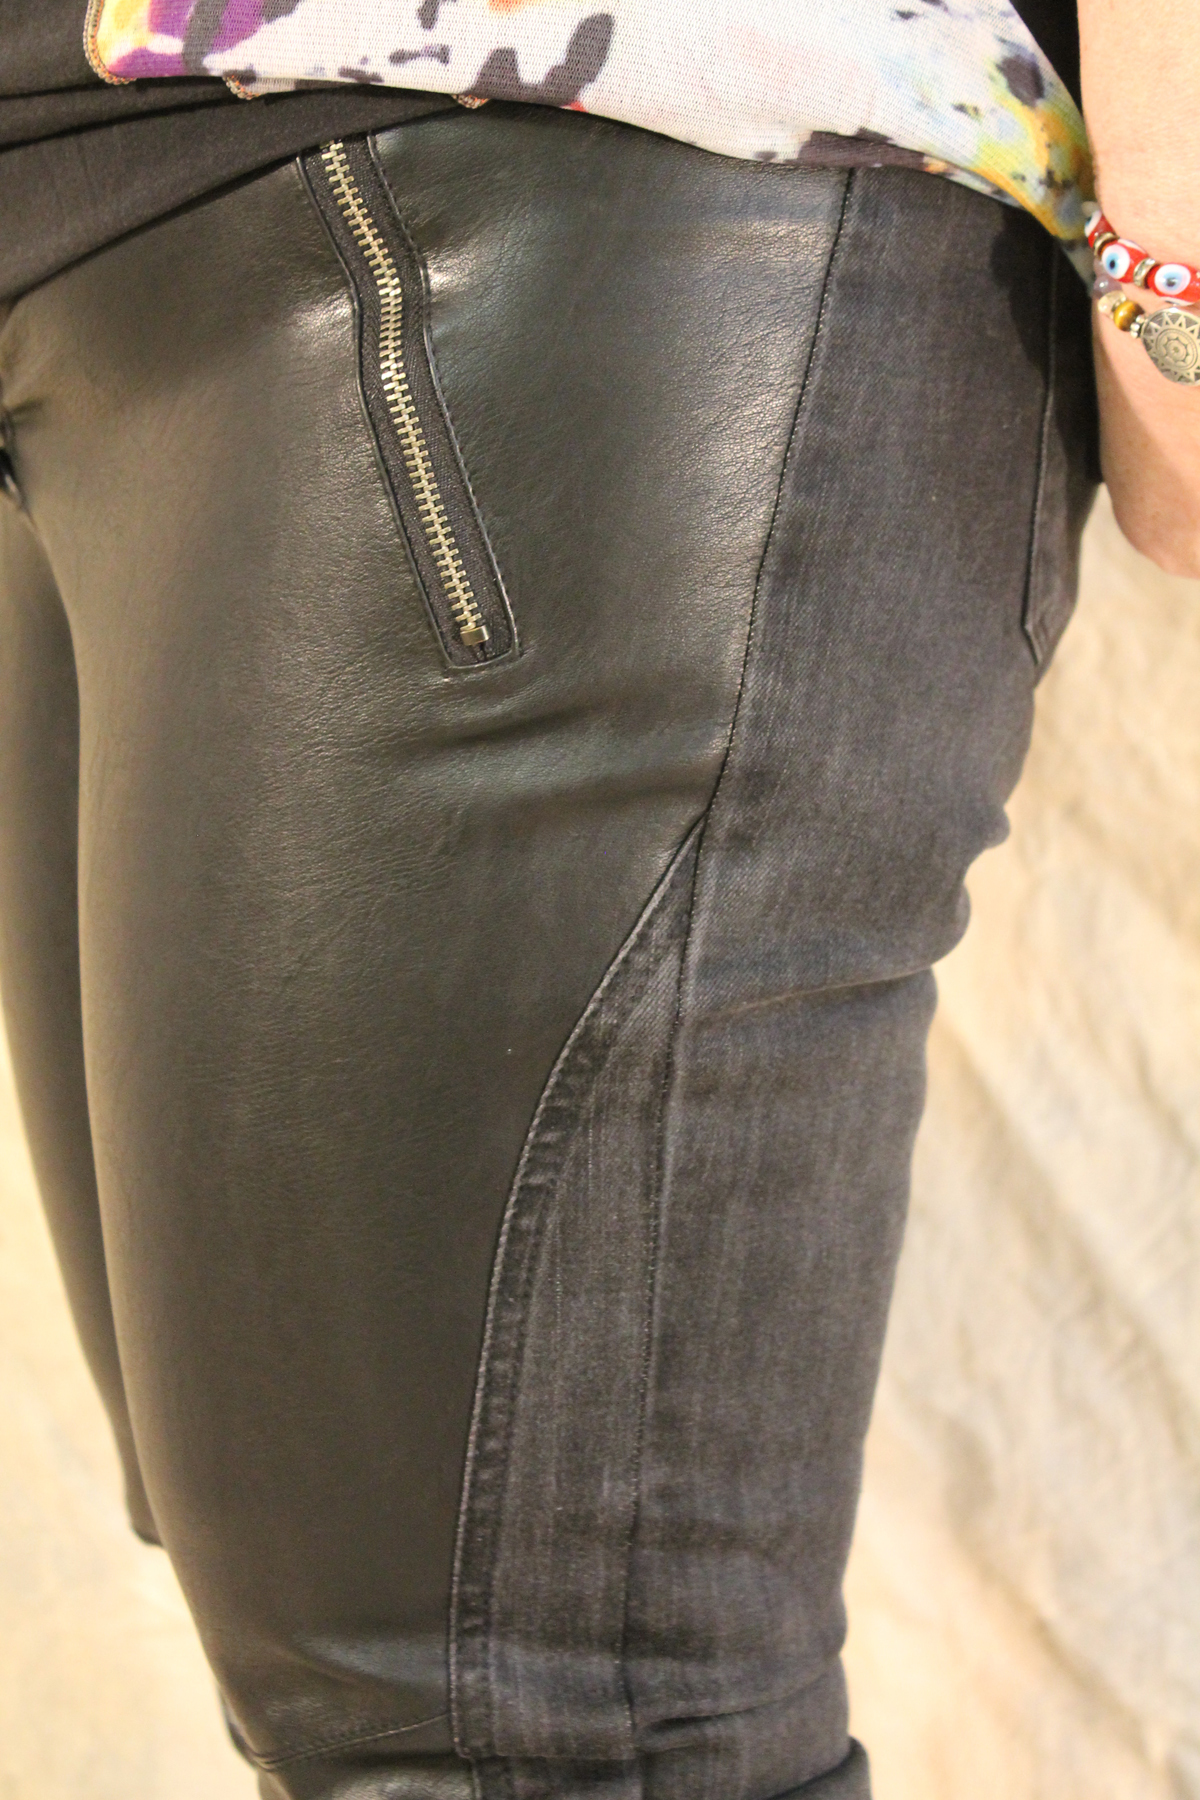 Lauren Vidal Luscious Leather Denim Pant